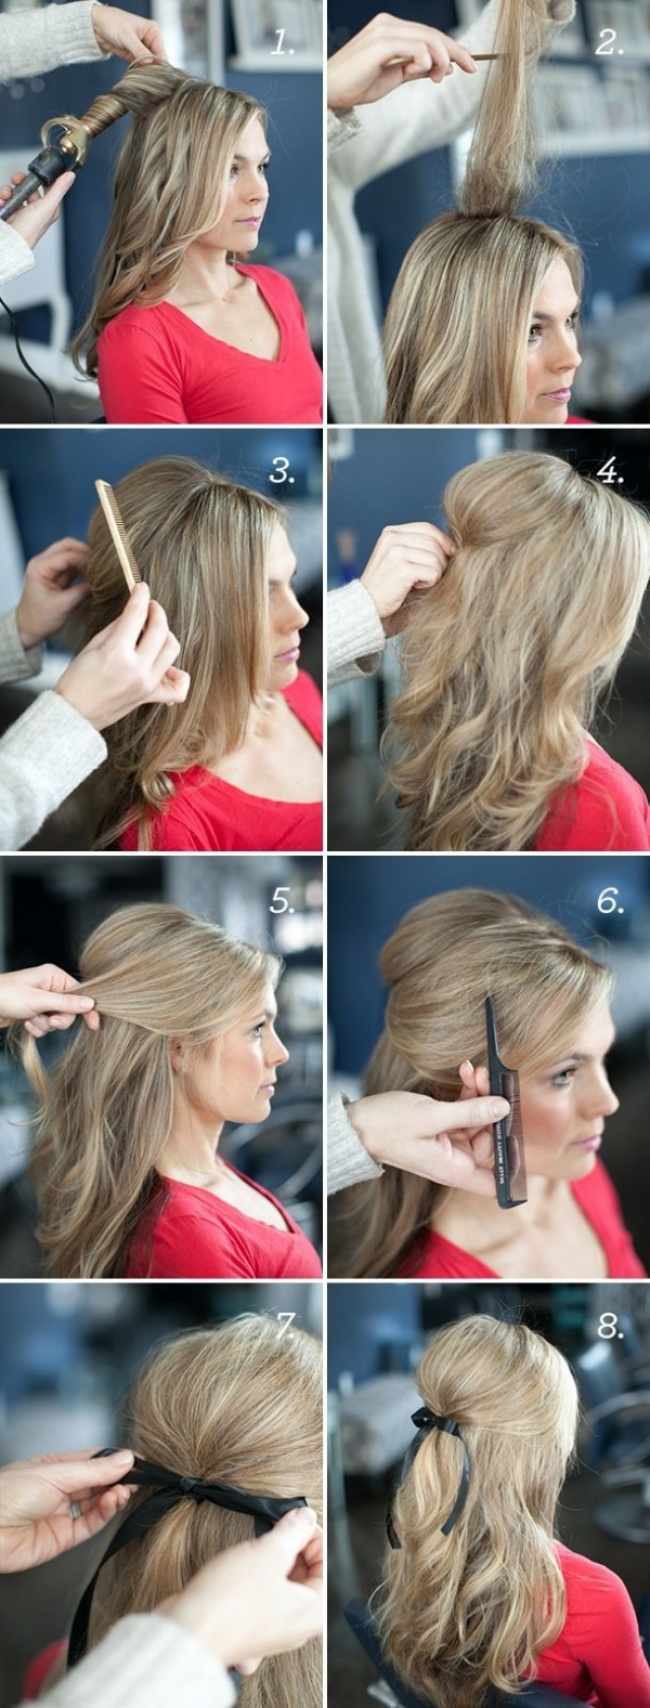 5065710-650-1449734639-fabulous-half-up-half-down-hairstyles-4